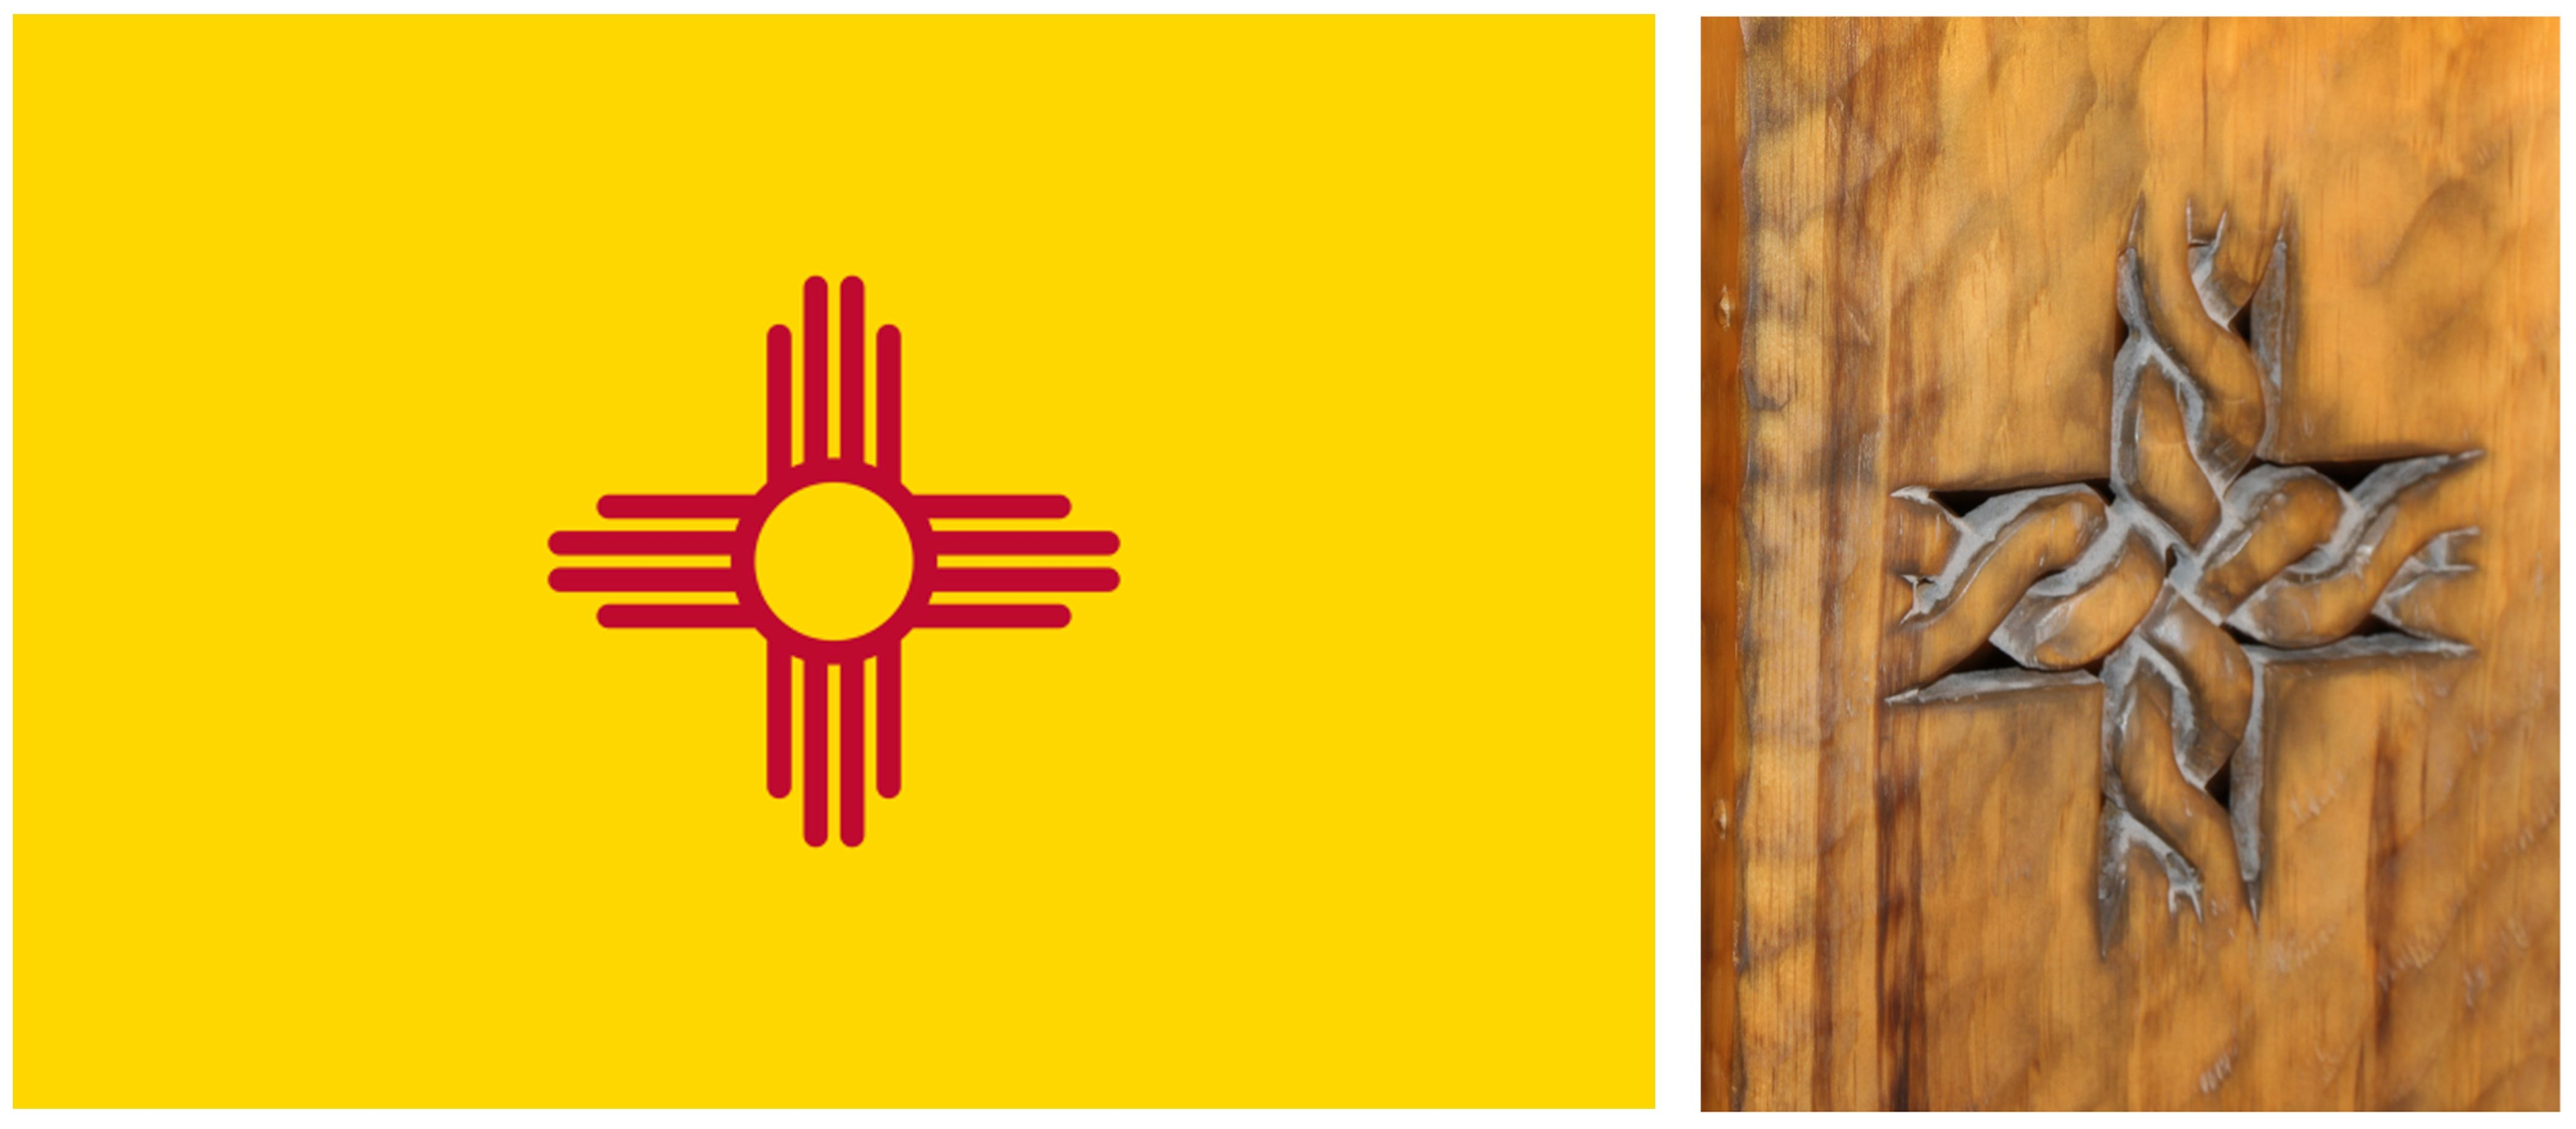 Learn about the meaning of the zia on the new mexico state flag on learn about the meaning of the zia on the new mexico state flag on our blog today click the image to find out art petroglyphs symbolism symbols buycottarizona